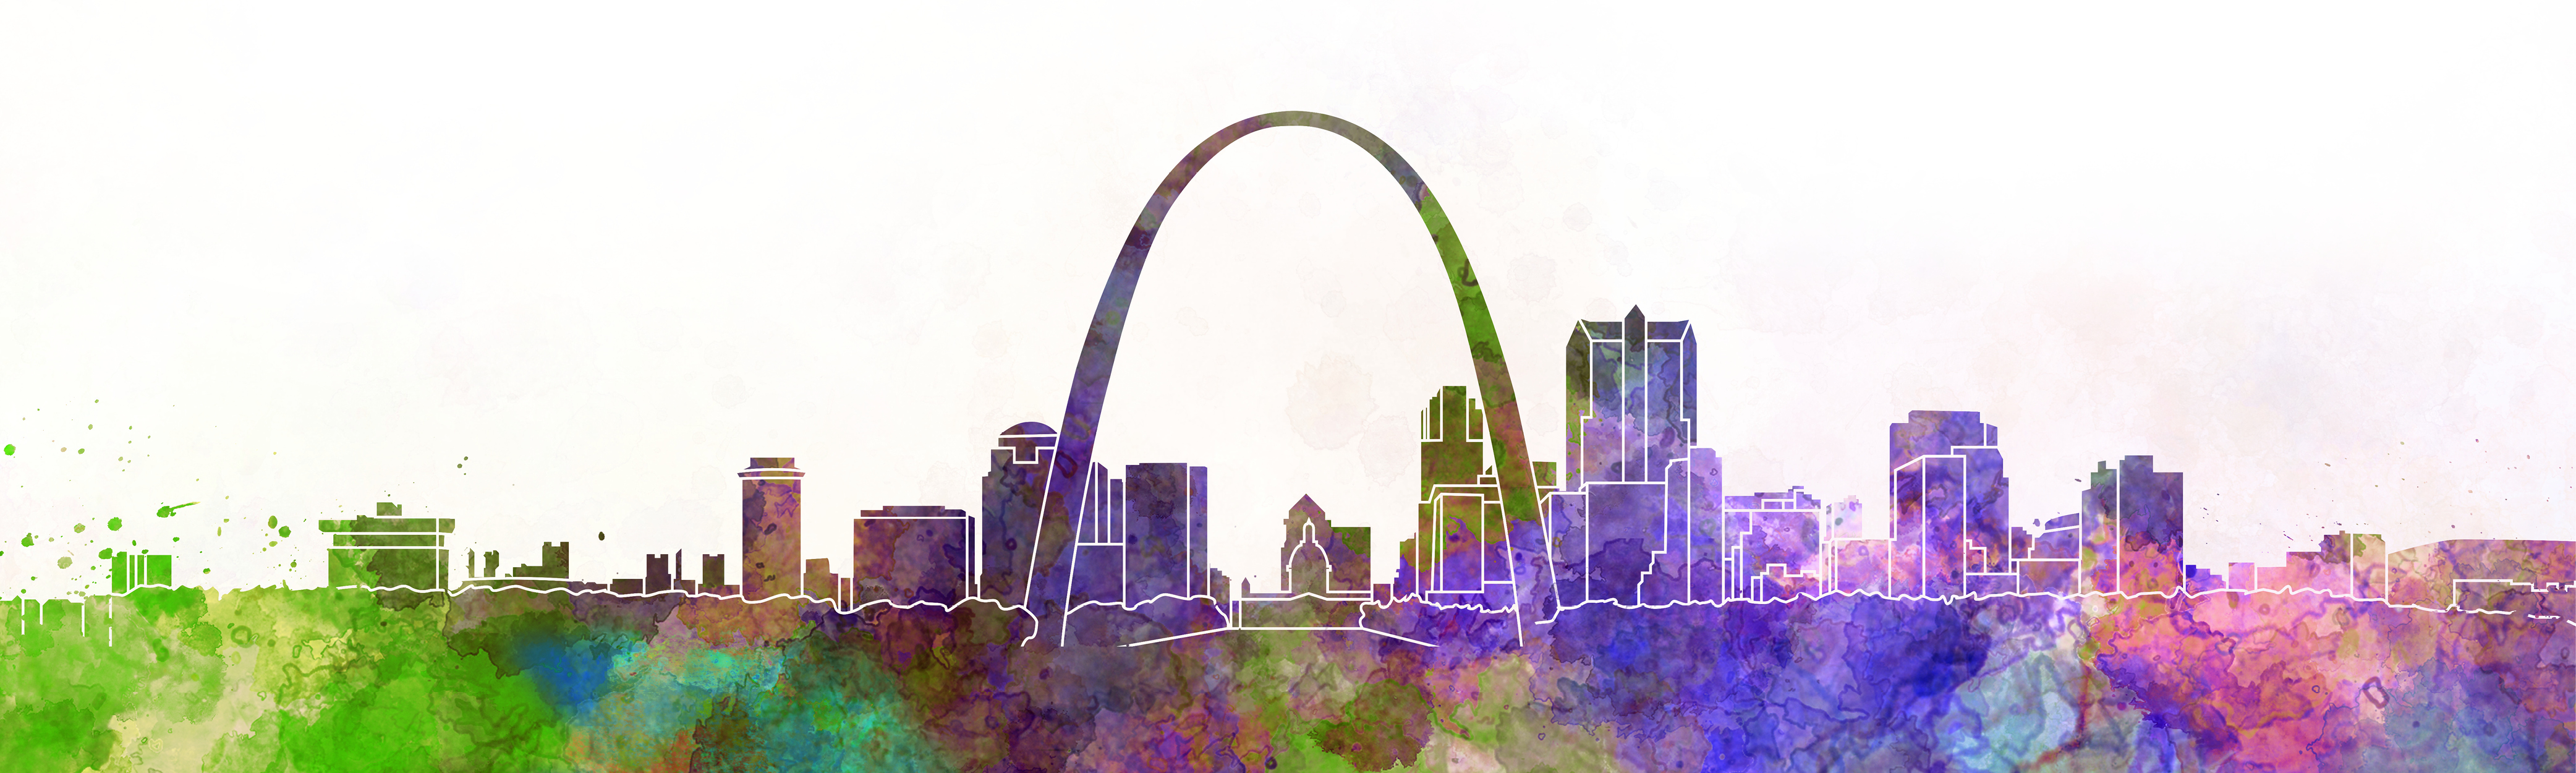 St Louis skyline in watercolor effect, shows the arch and buildings in green, purple, pink, and blue.